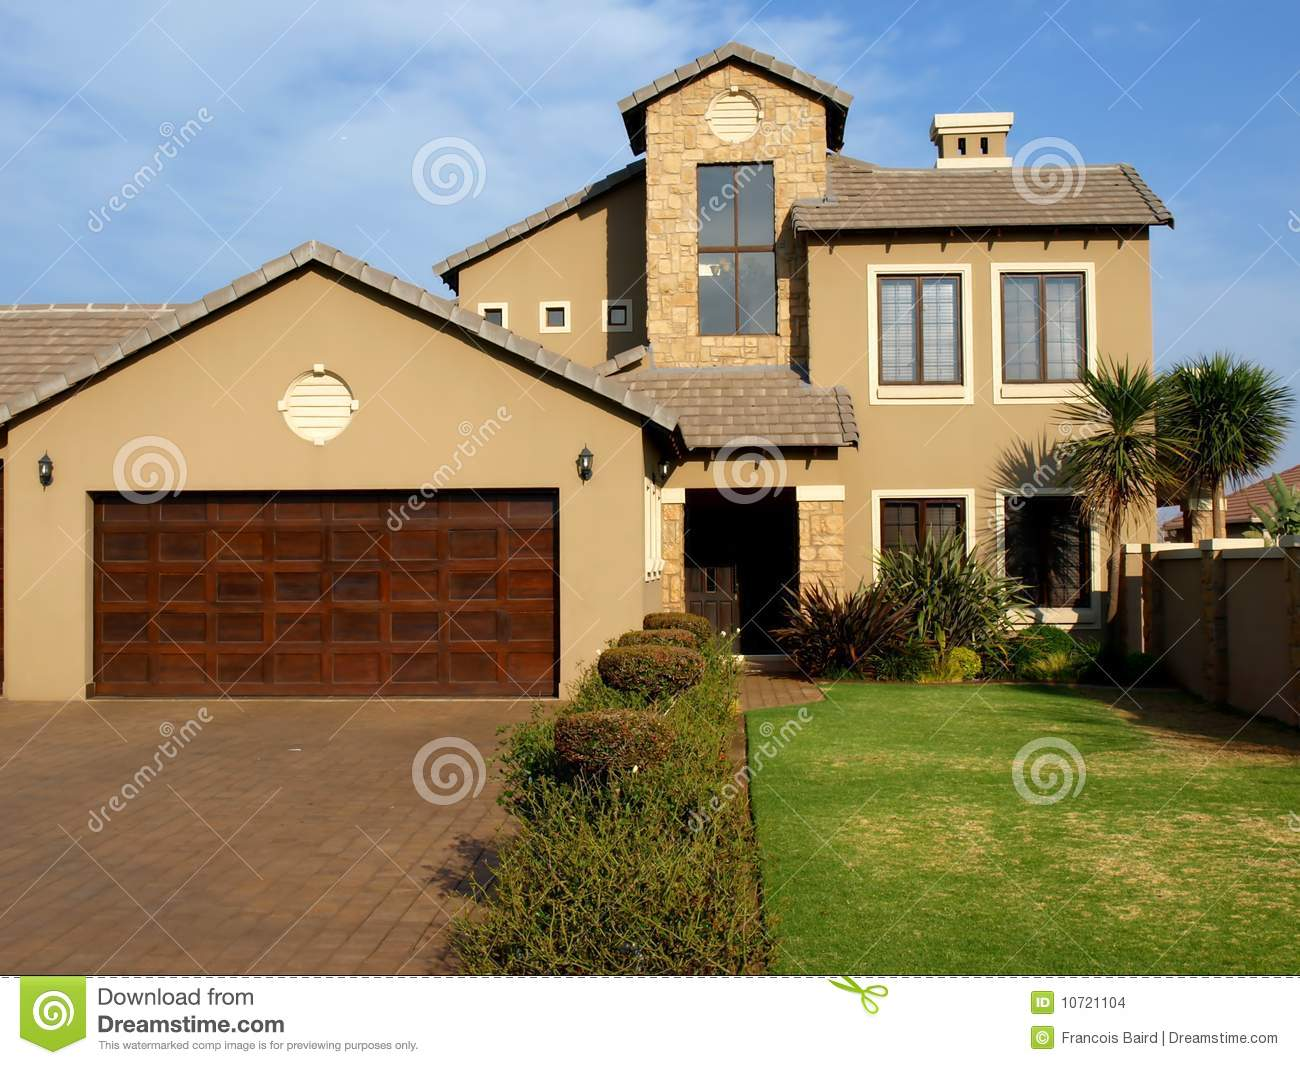 Http Www Homedesignideashq Us Review Stanley Home Design Software Free Download